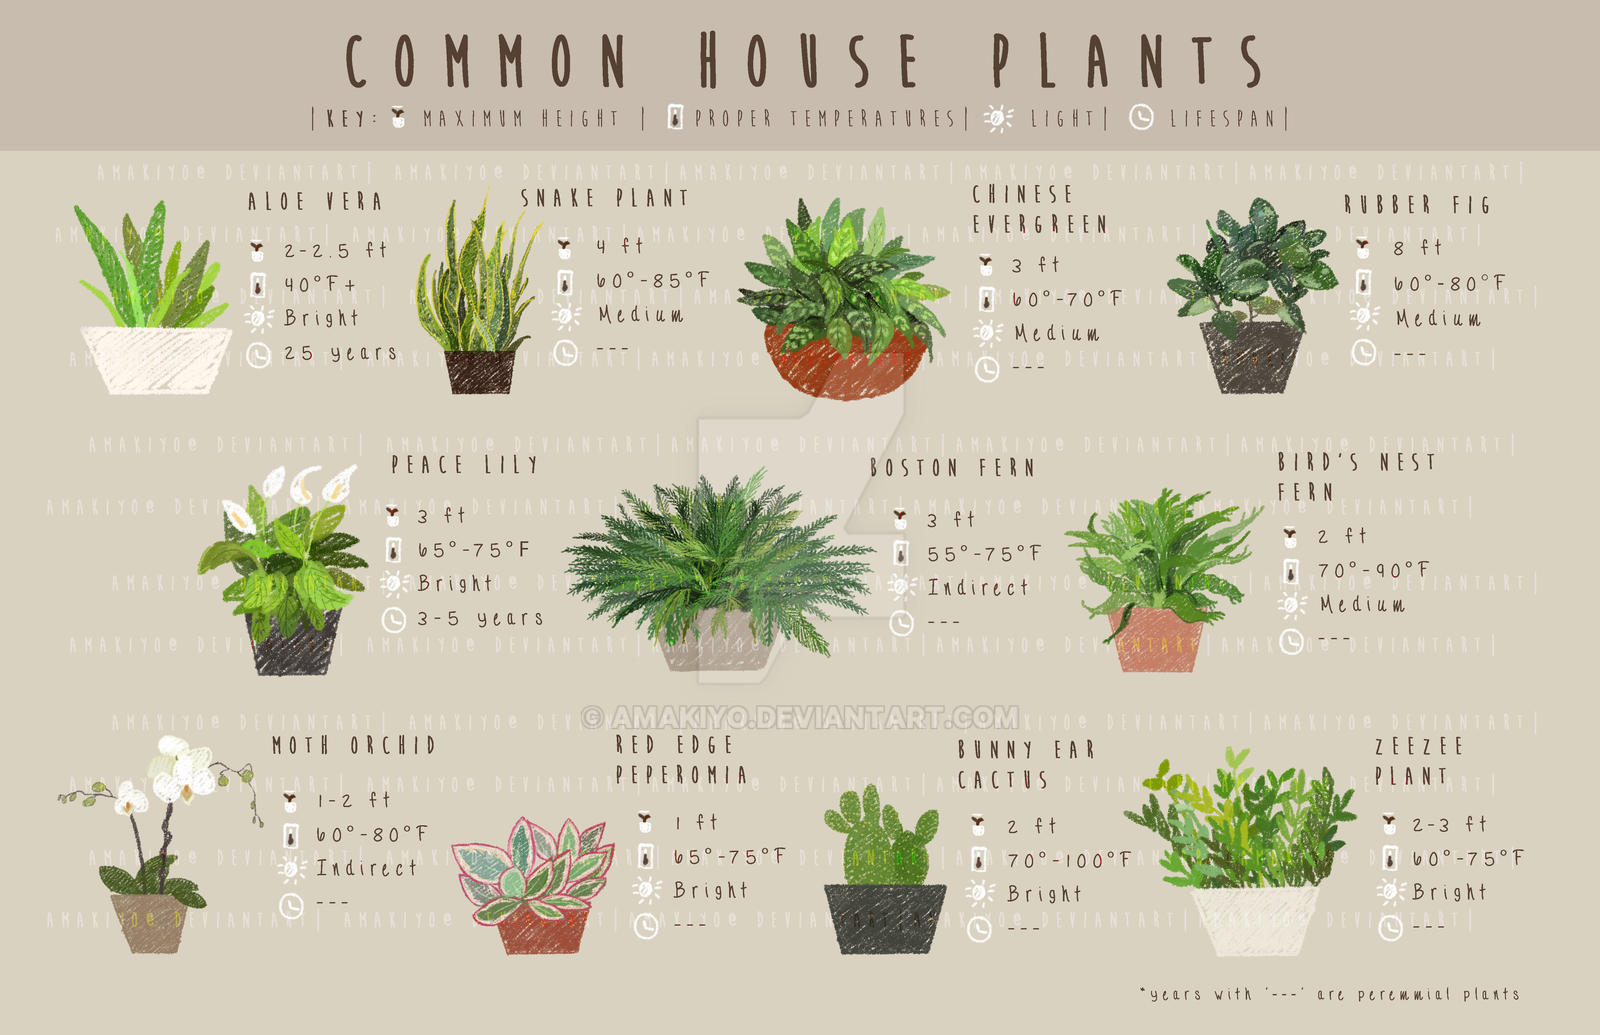 Common house plants by amakiyo on deviantart - Most popular house plants ...